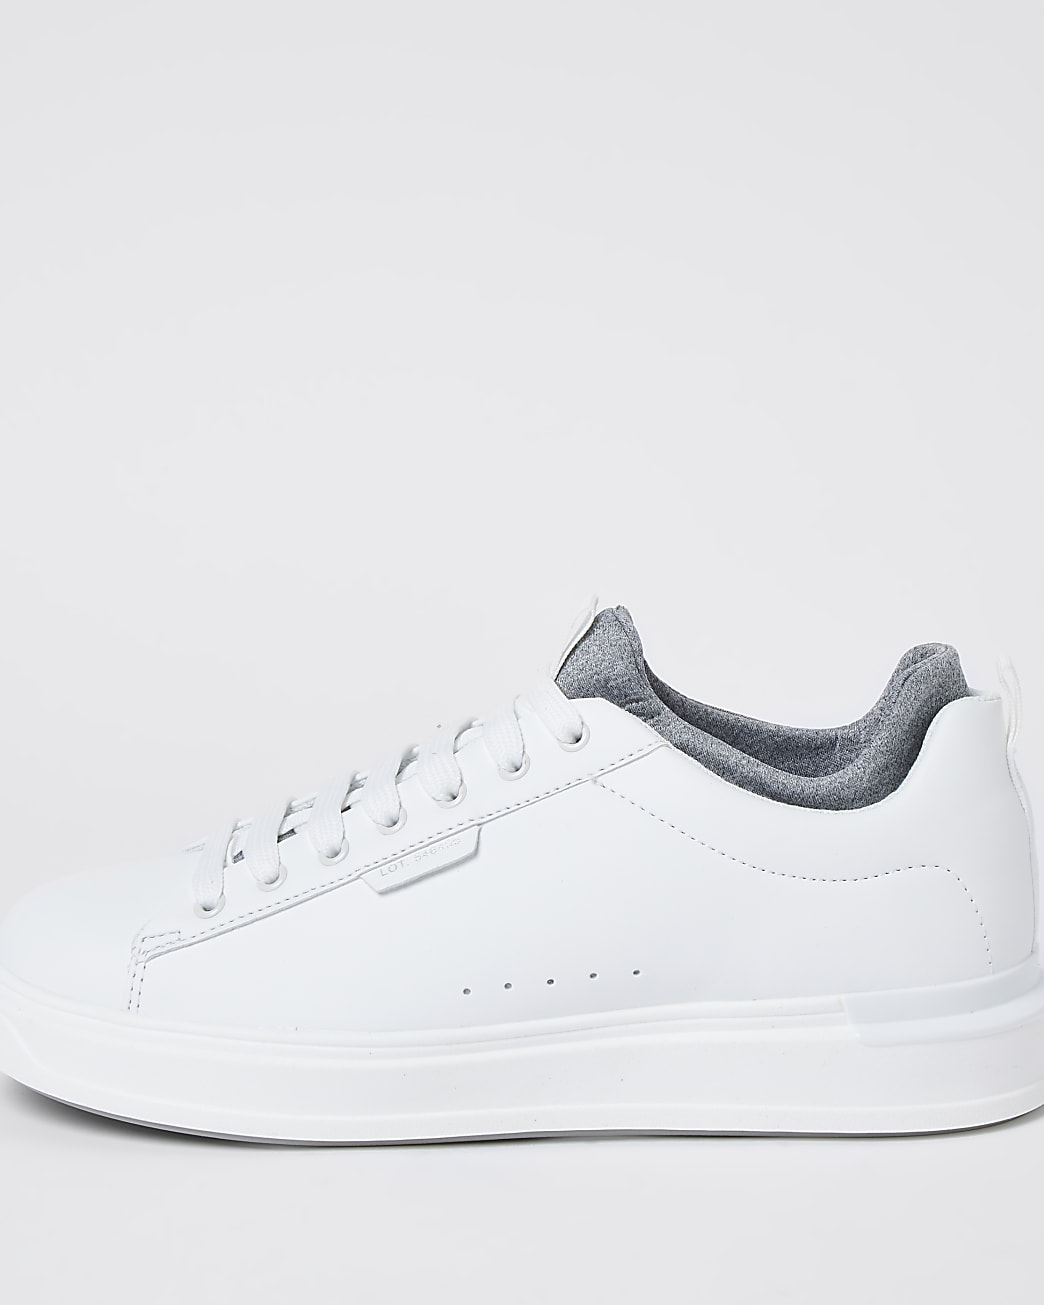 White lace-up wedge sole trainers